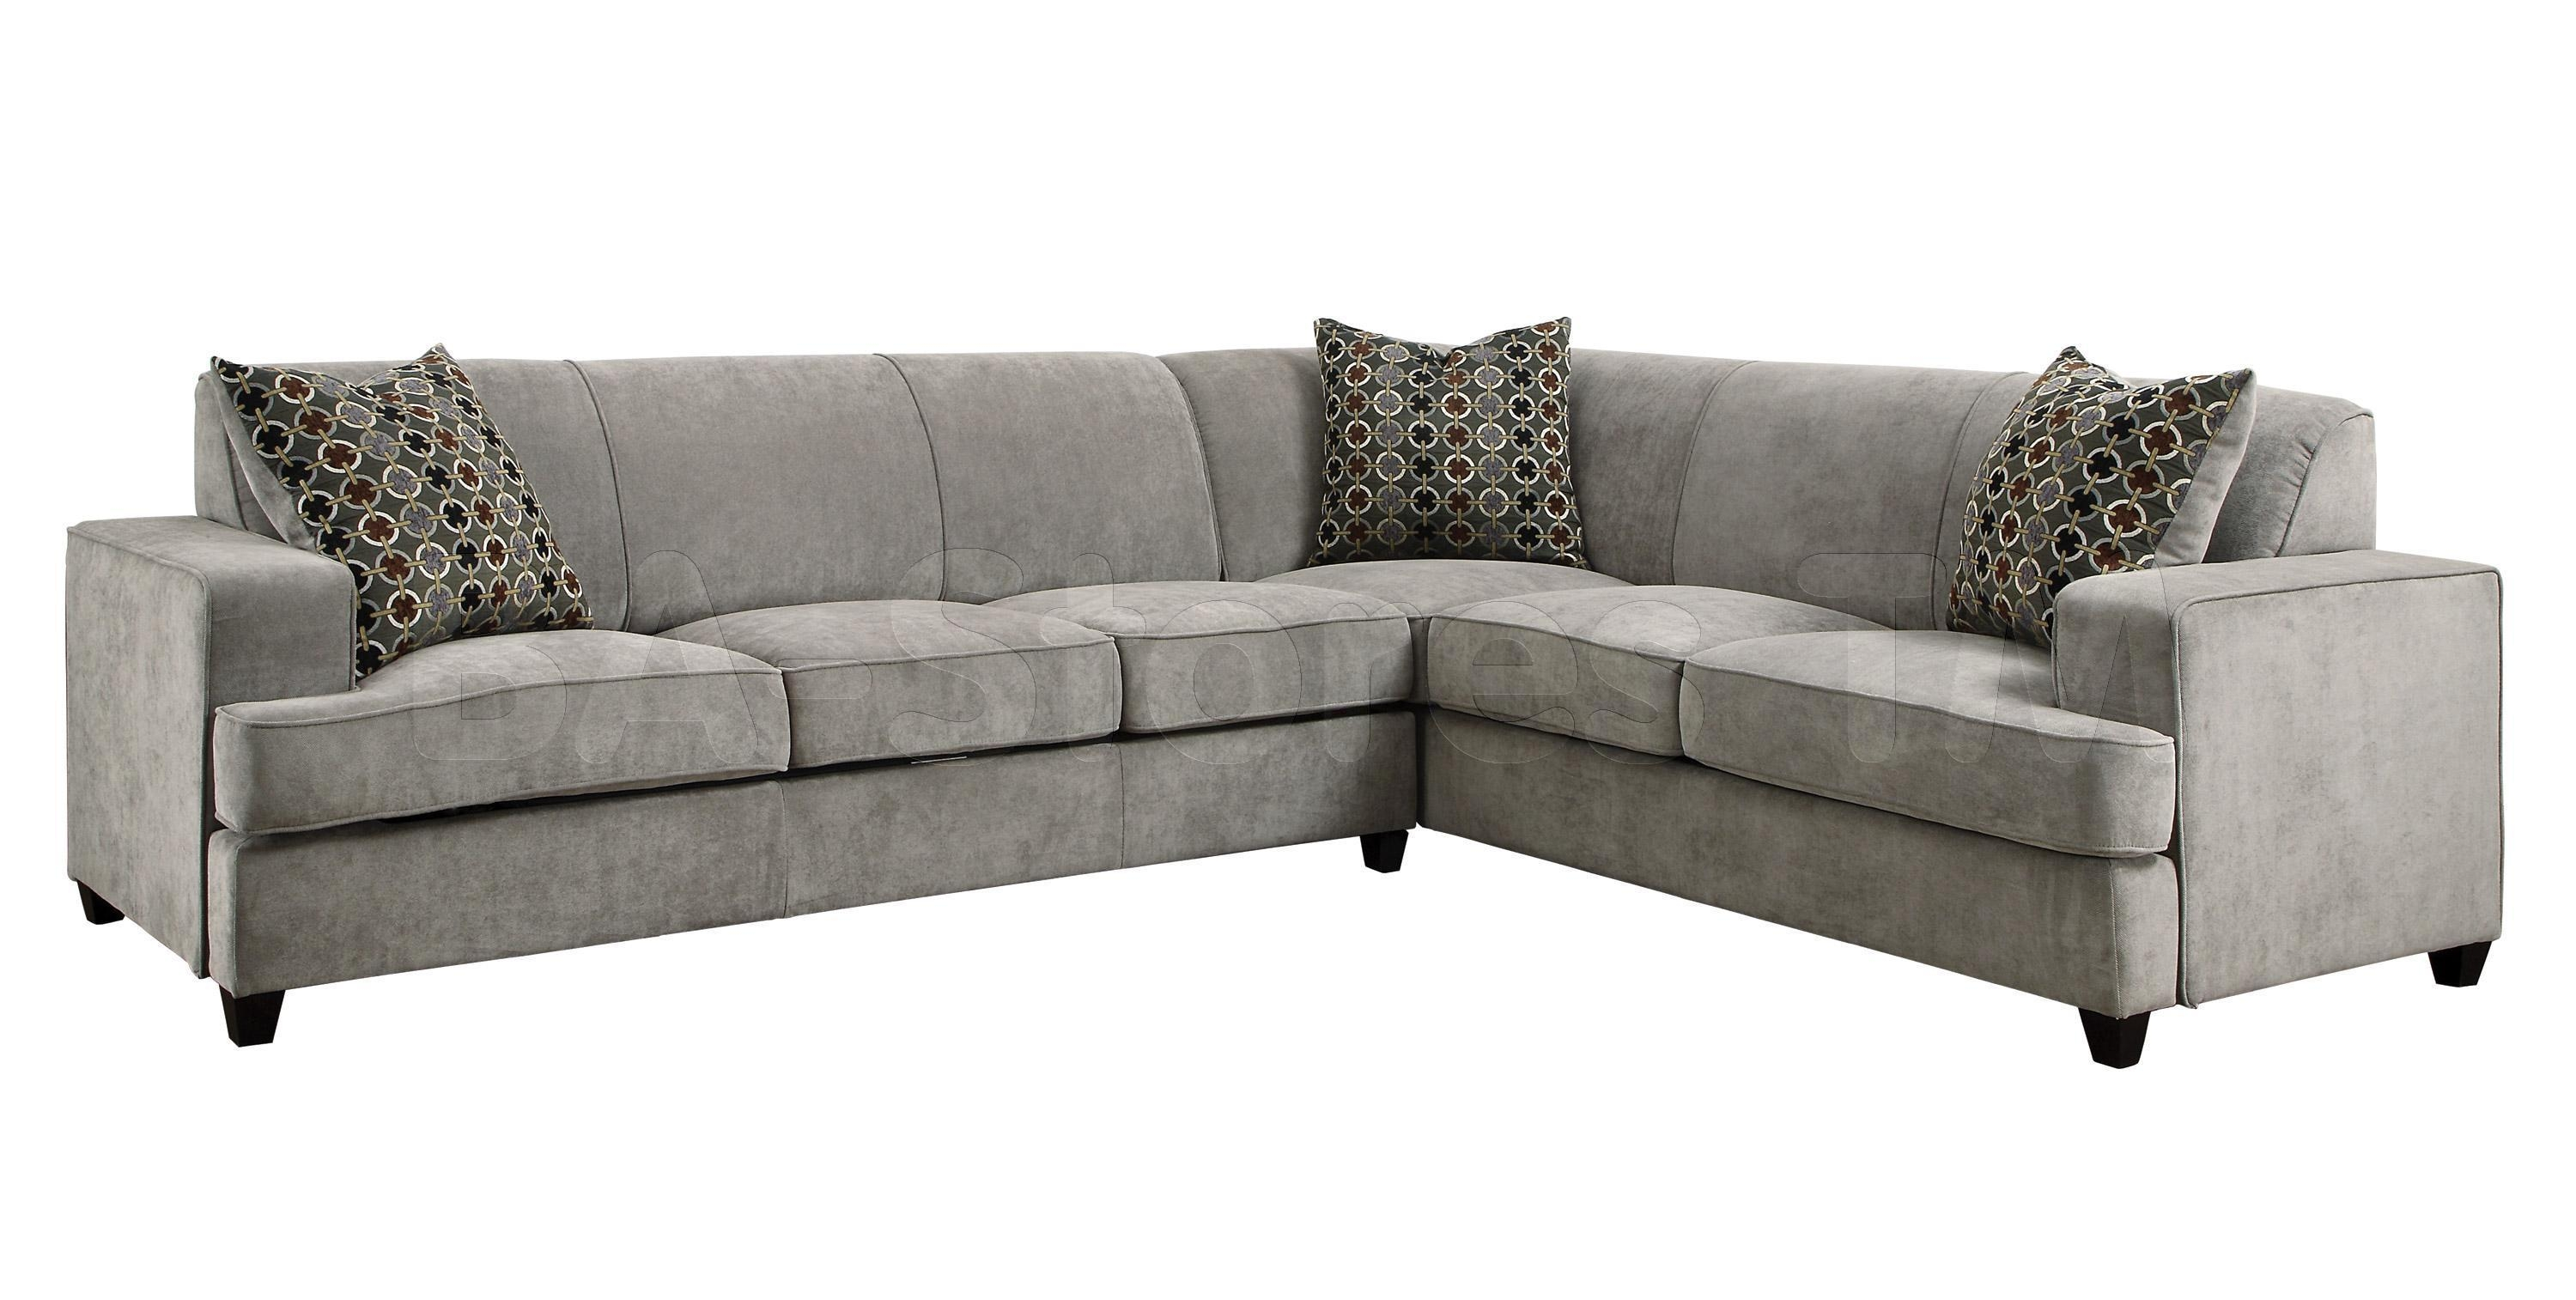 Brown Sectional Sofa With Sleeper Storage (Image 8 of 15)